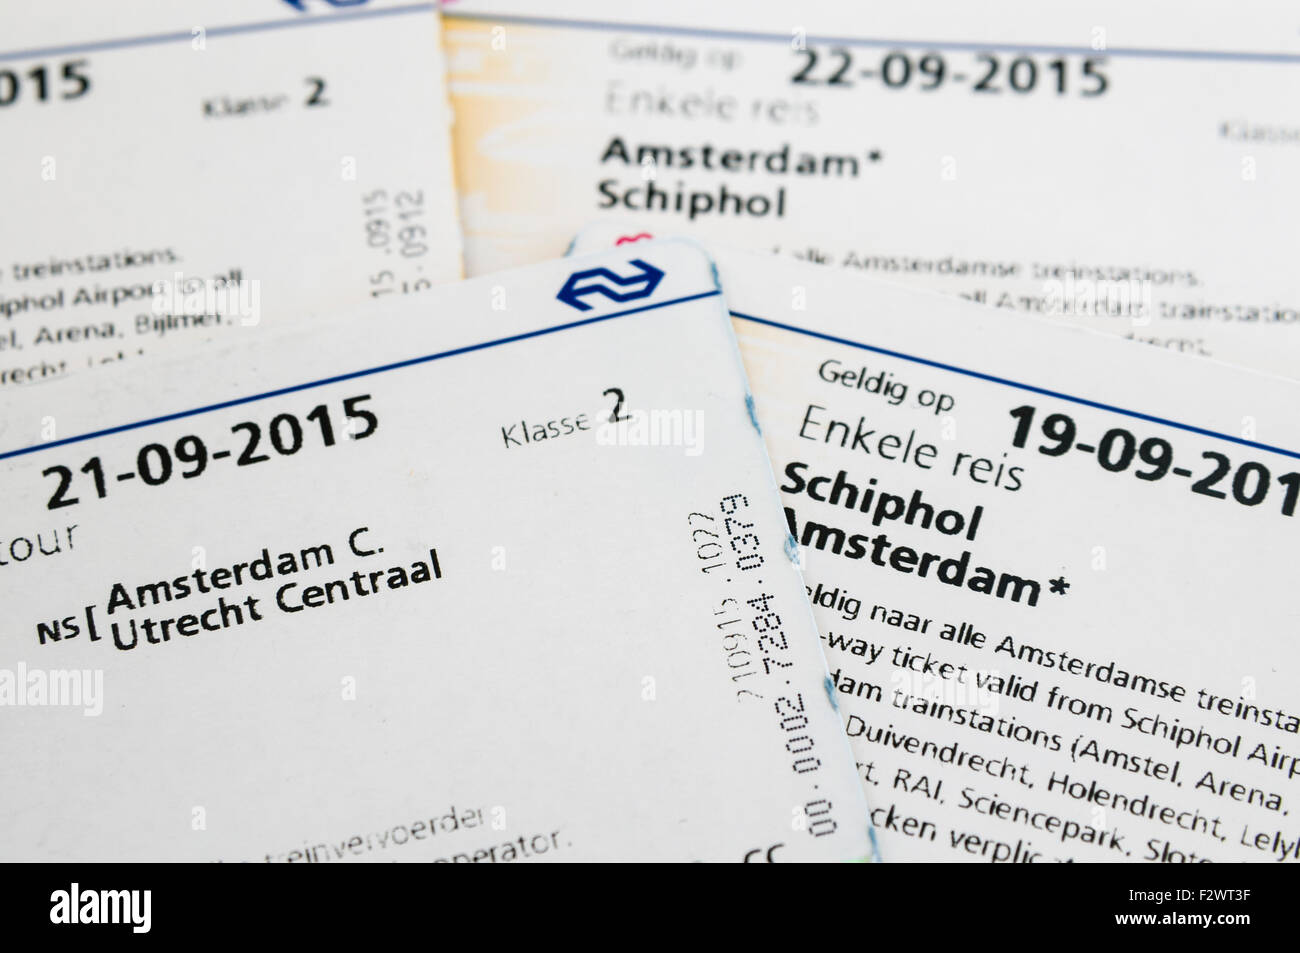 Return tickets for Amsterdam to Schiphol Airport and Utrecht Centraal on the Nederlandse Spoorwegen (NS) train. - Stock Image